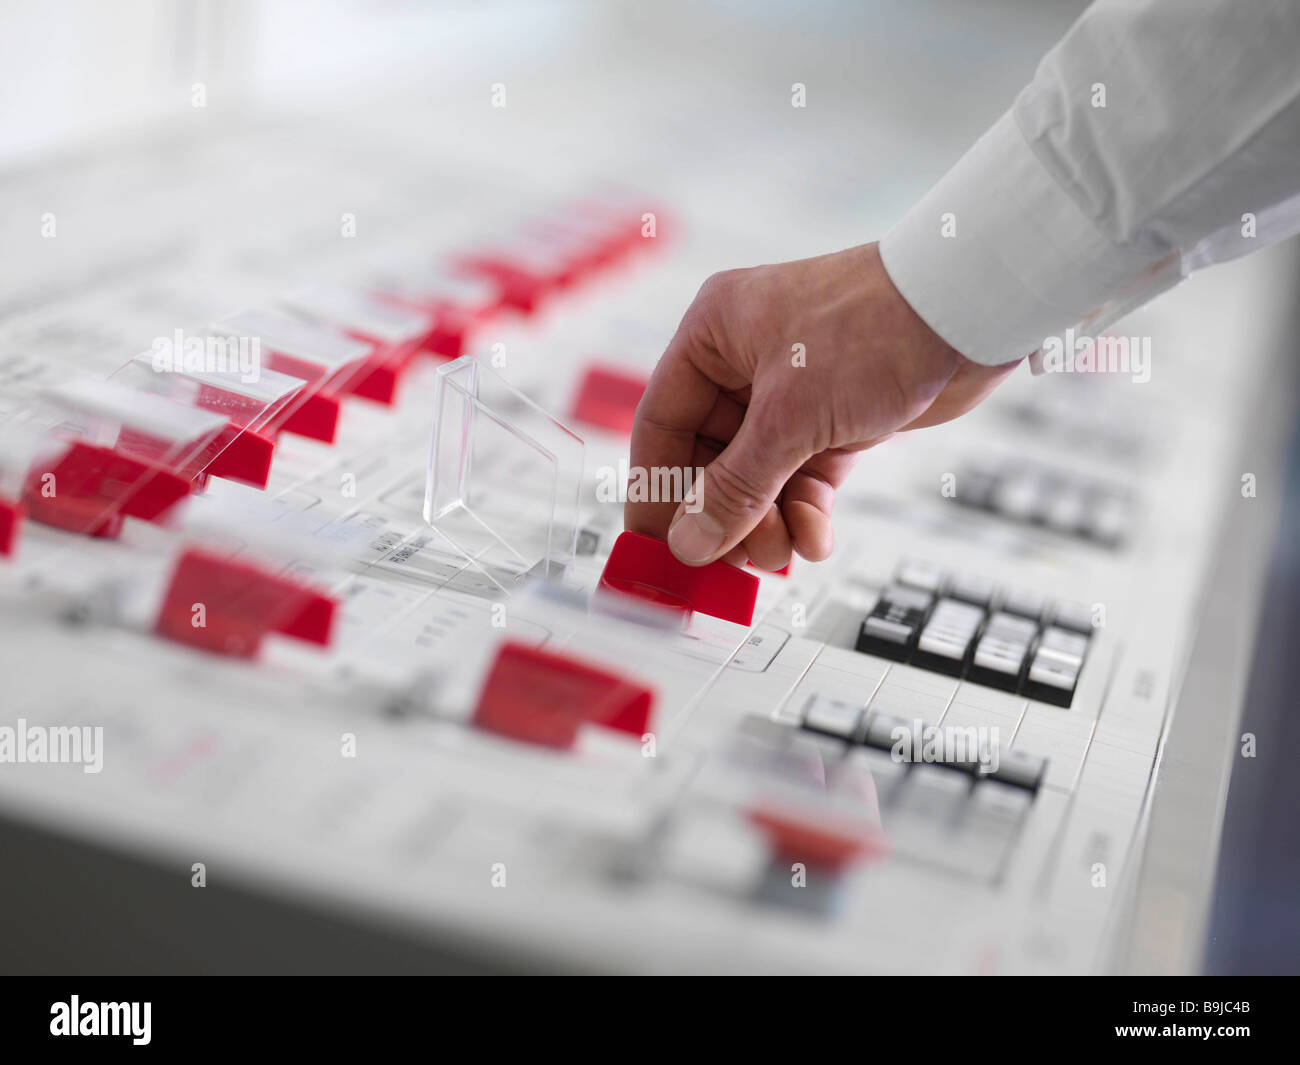 Operator turning red switch - Stock Image